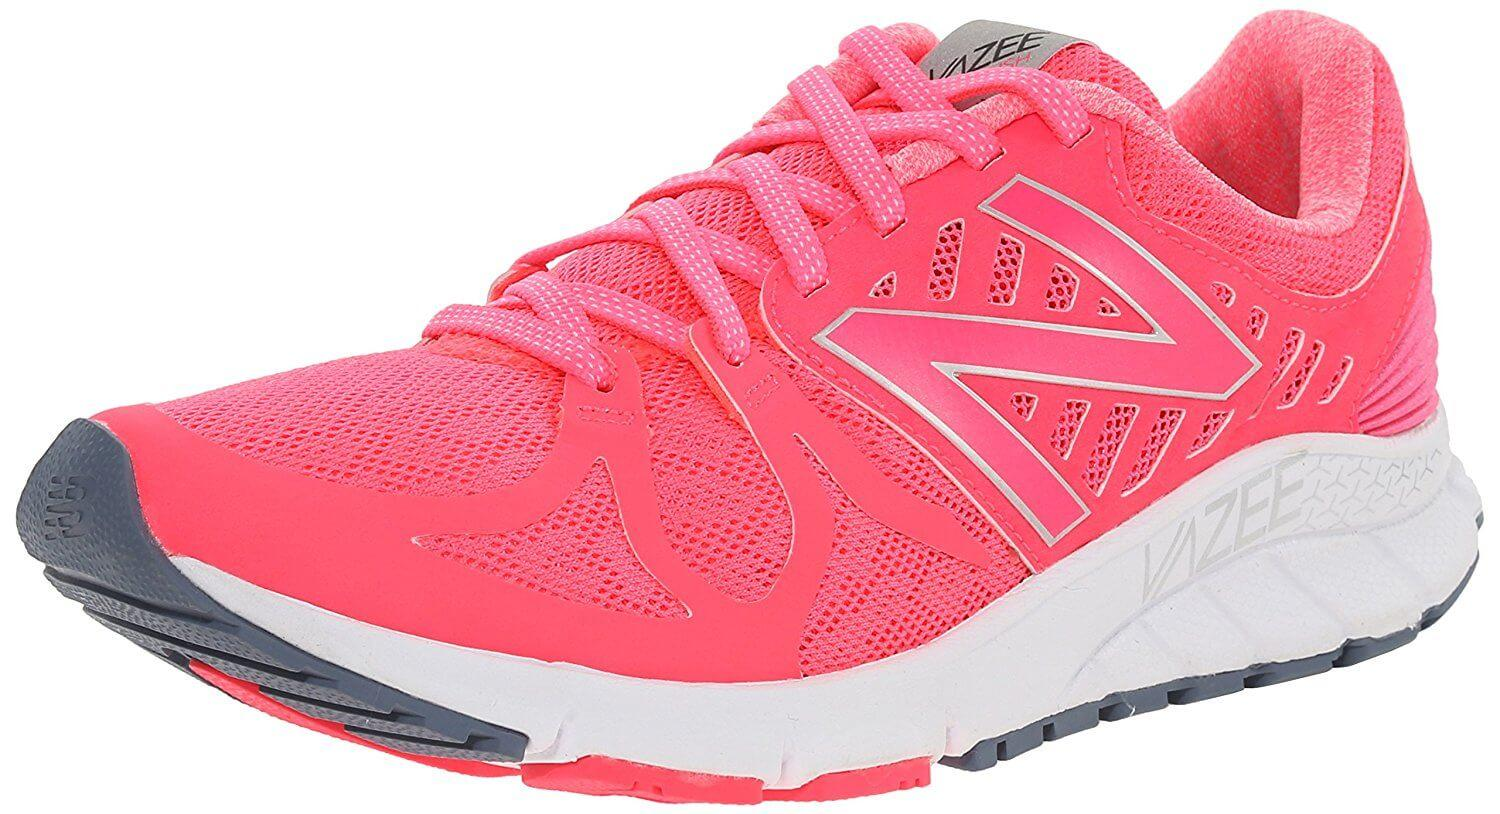 10 Best Pink Running Shoes Reviewed & Compared in 2020 | RunnerClick